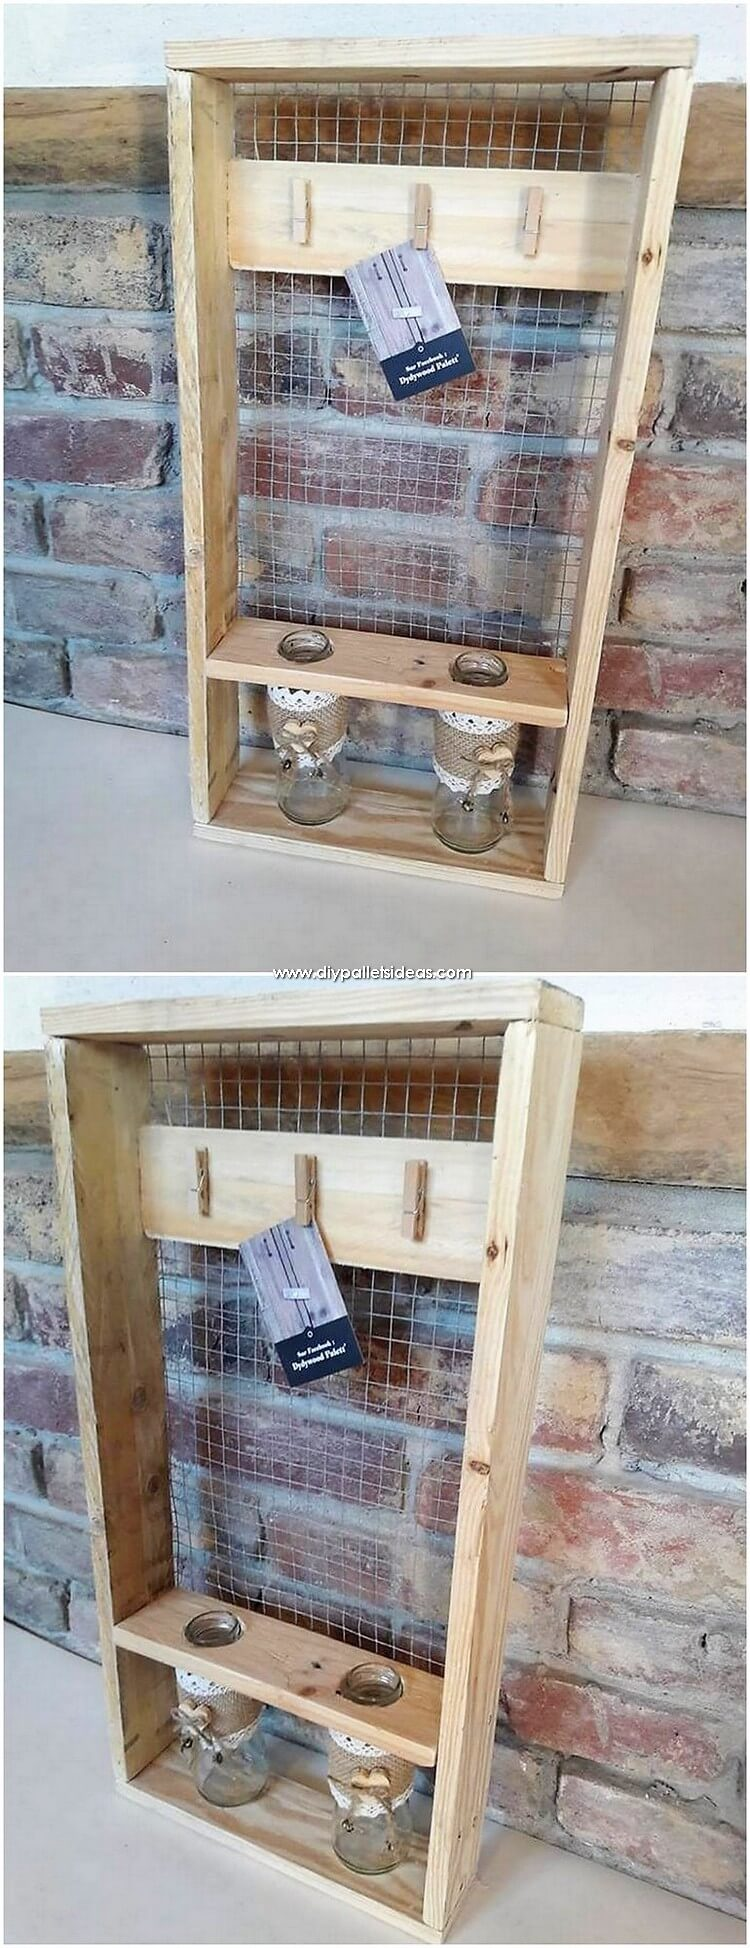 Pallet Kitchen Creation